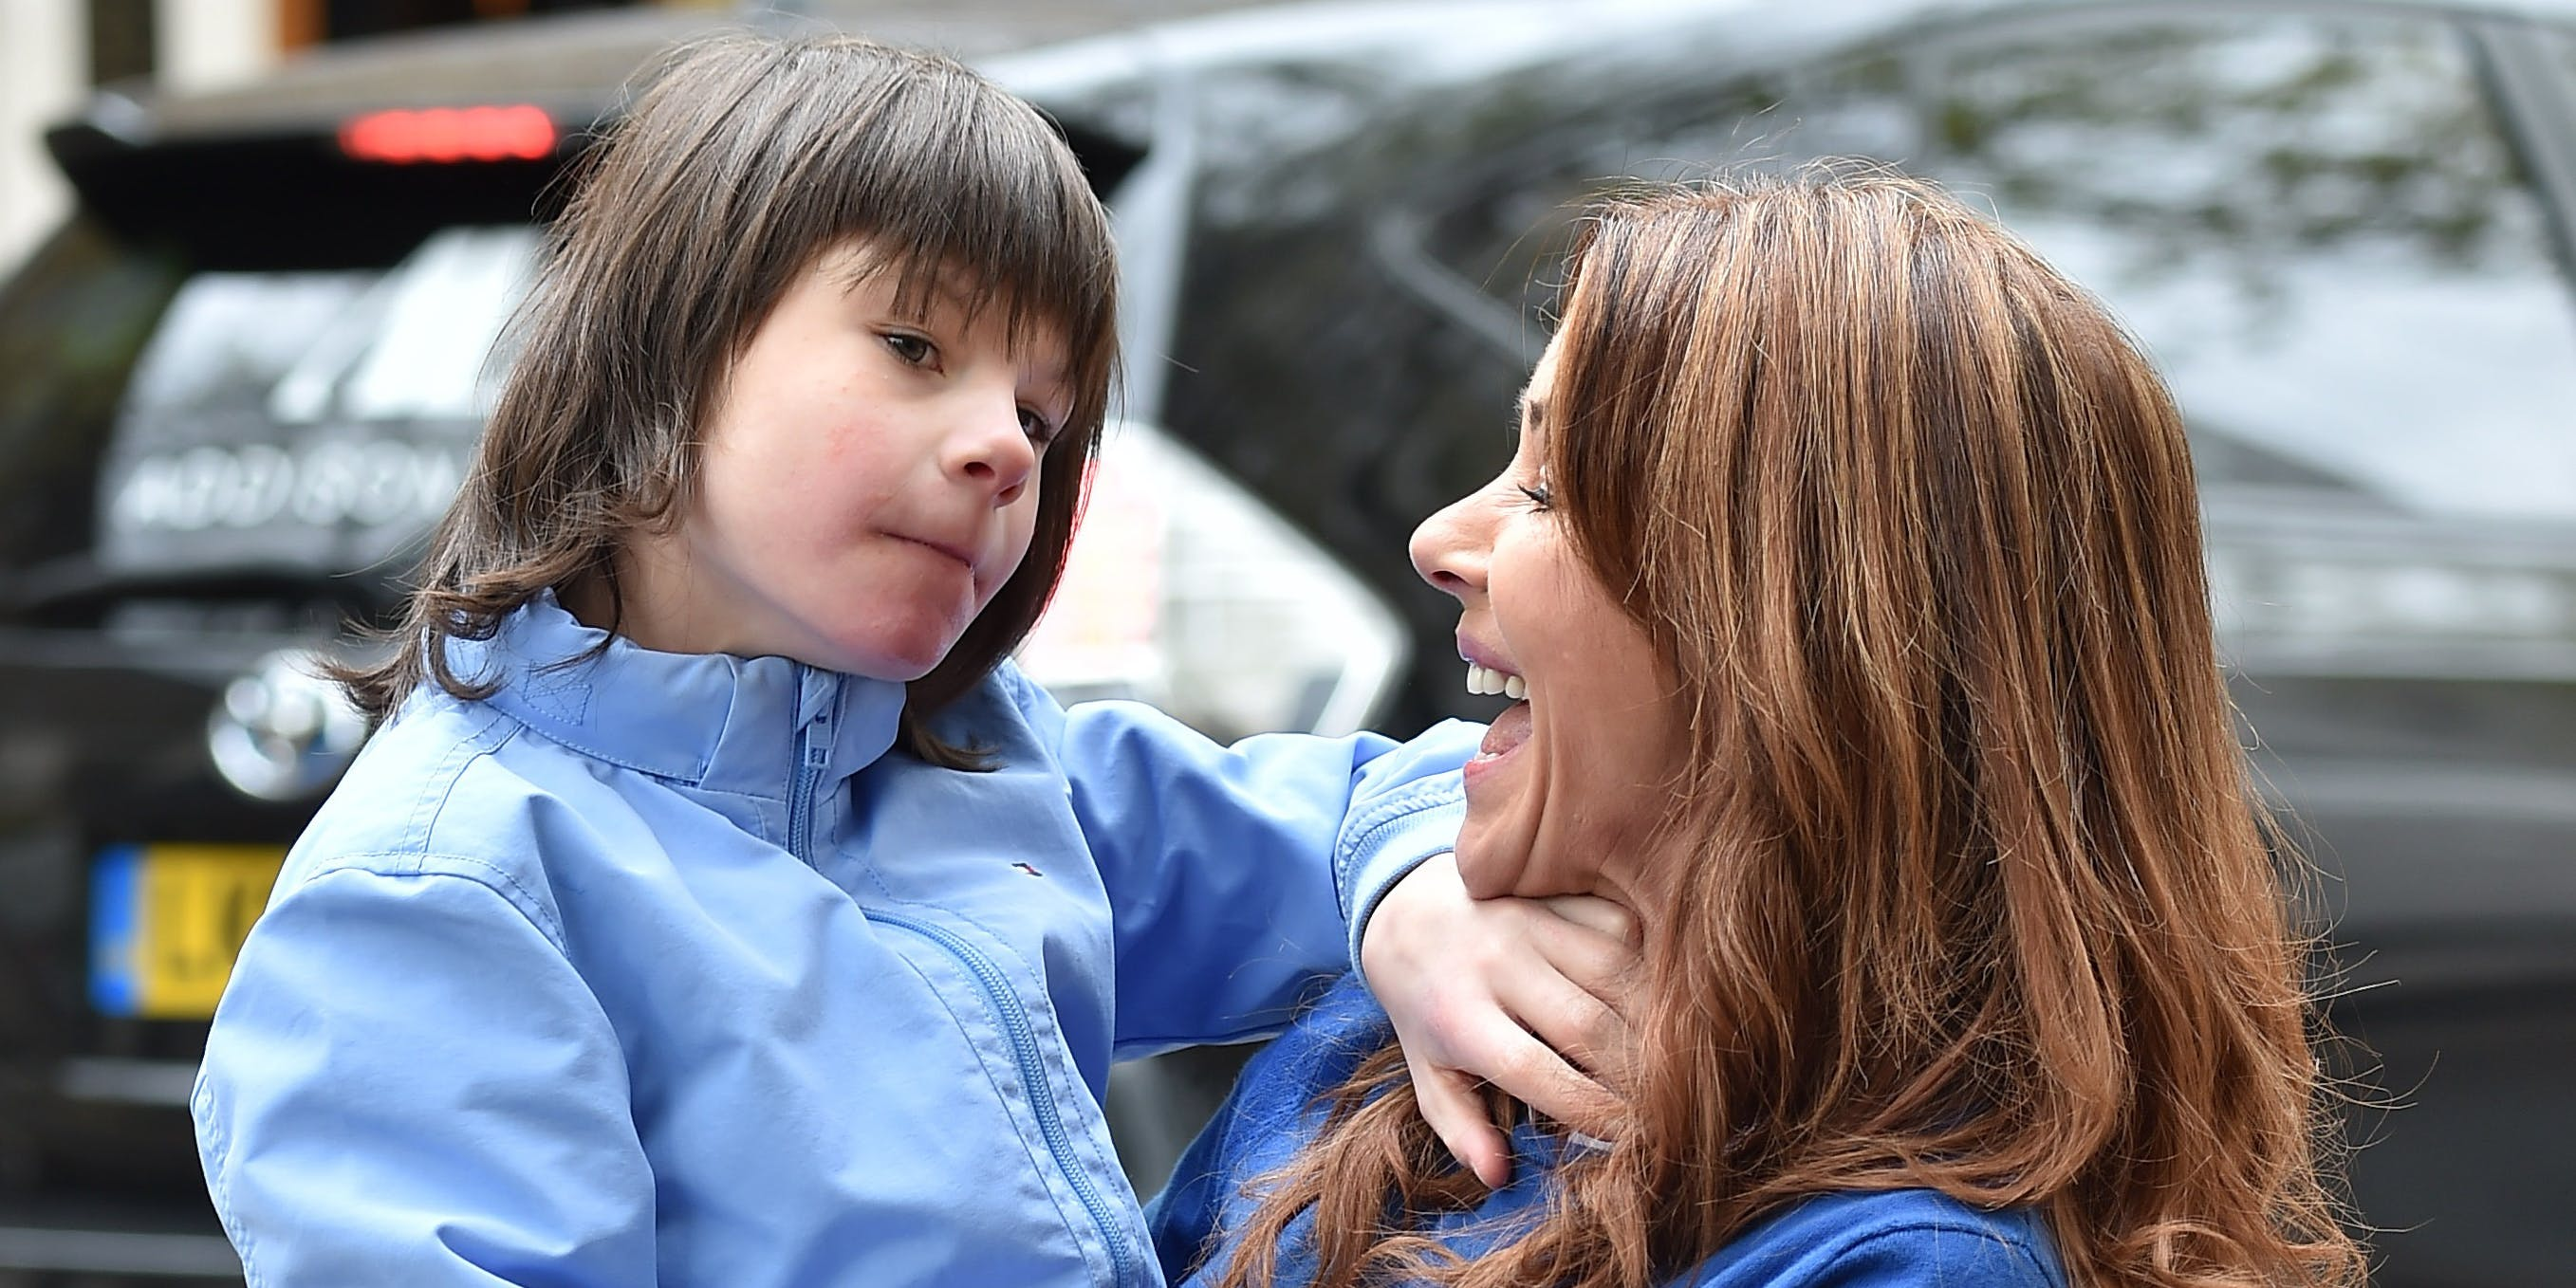 11-year-old with epilepsy cannabis oil